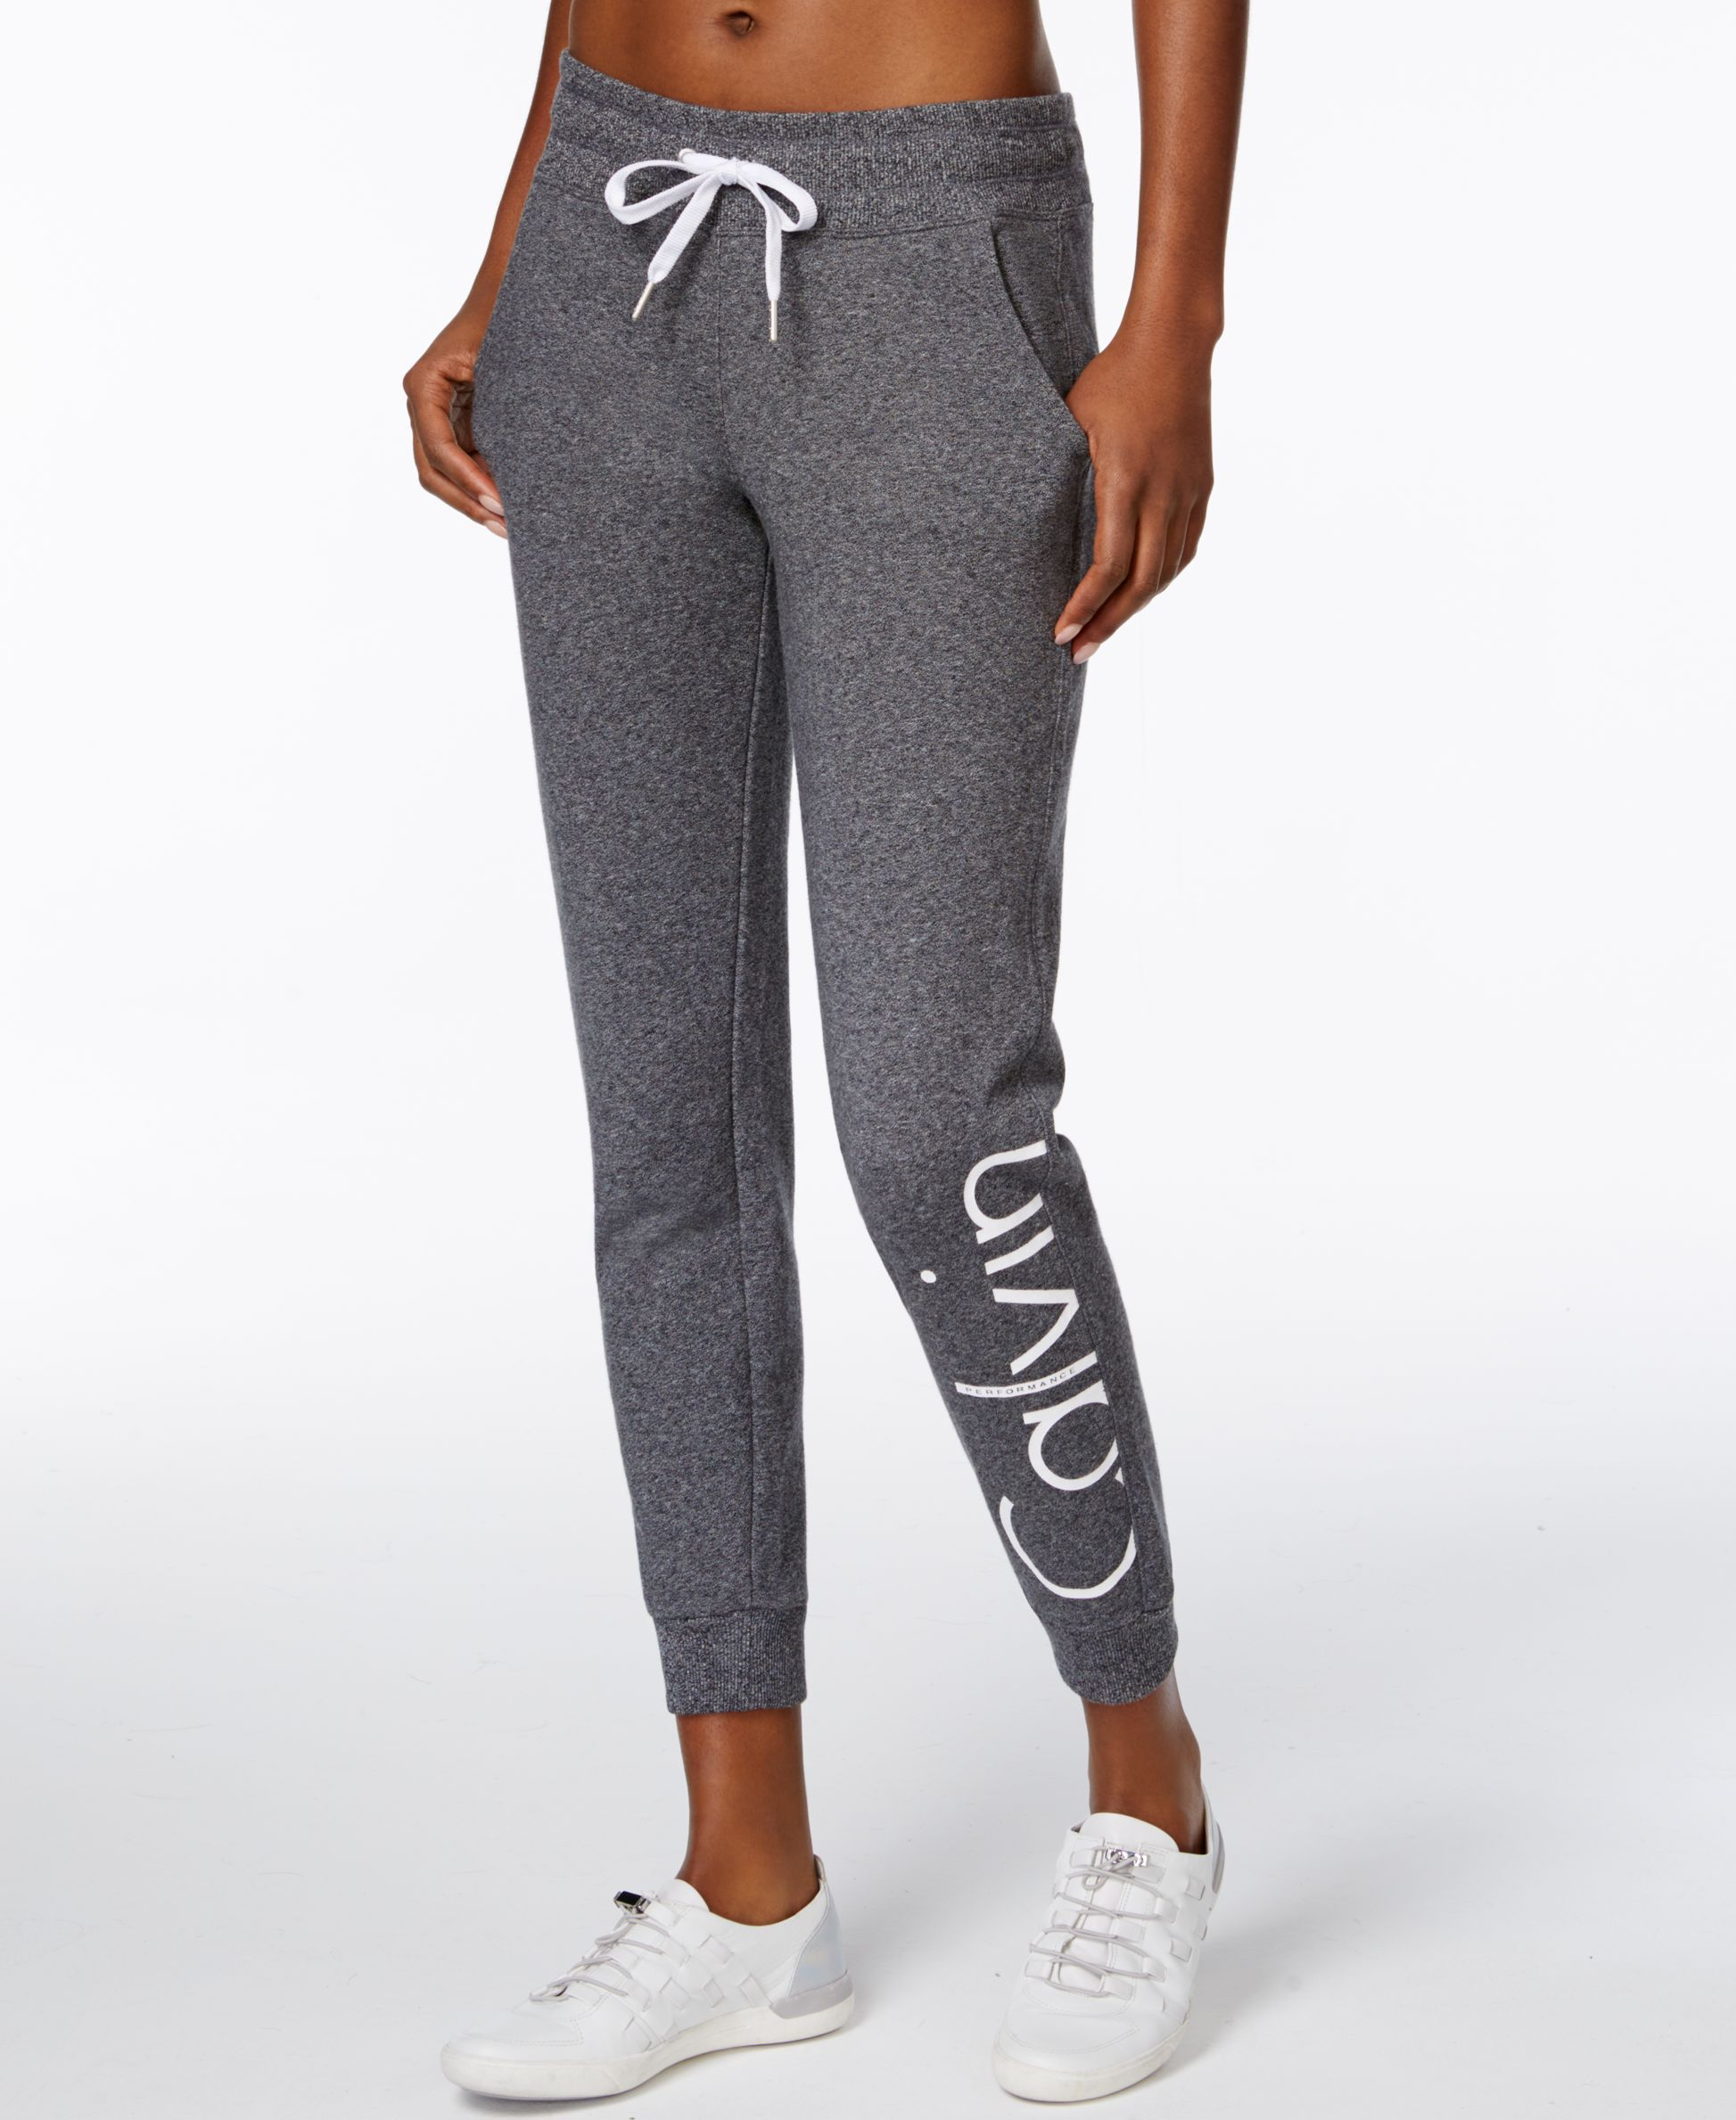 843834937d50a1 Make signature style part of your workout routine in these sleek Calvin  Klein Performance sweatpants. | Cotton/polyester | Machine washable |  Imported | Mid ...